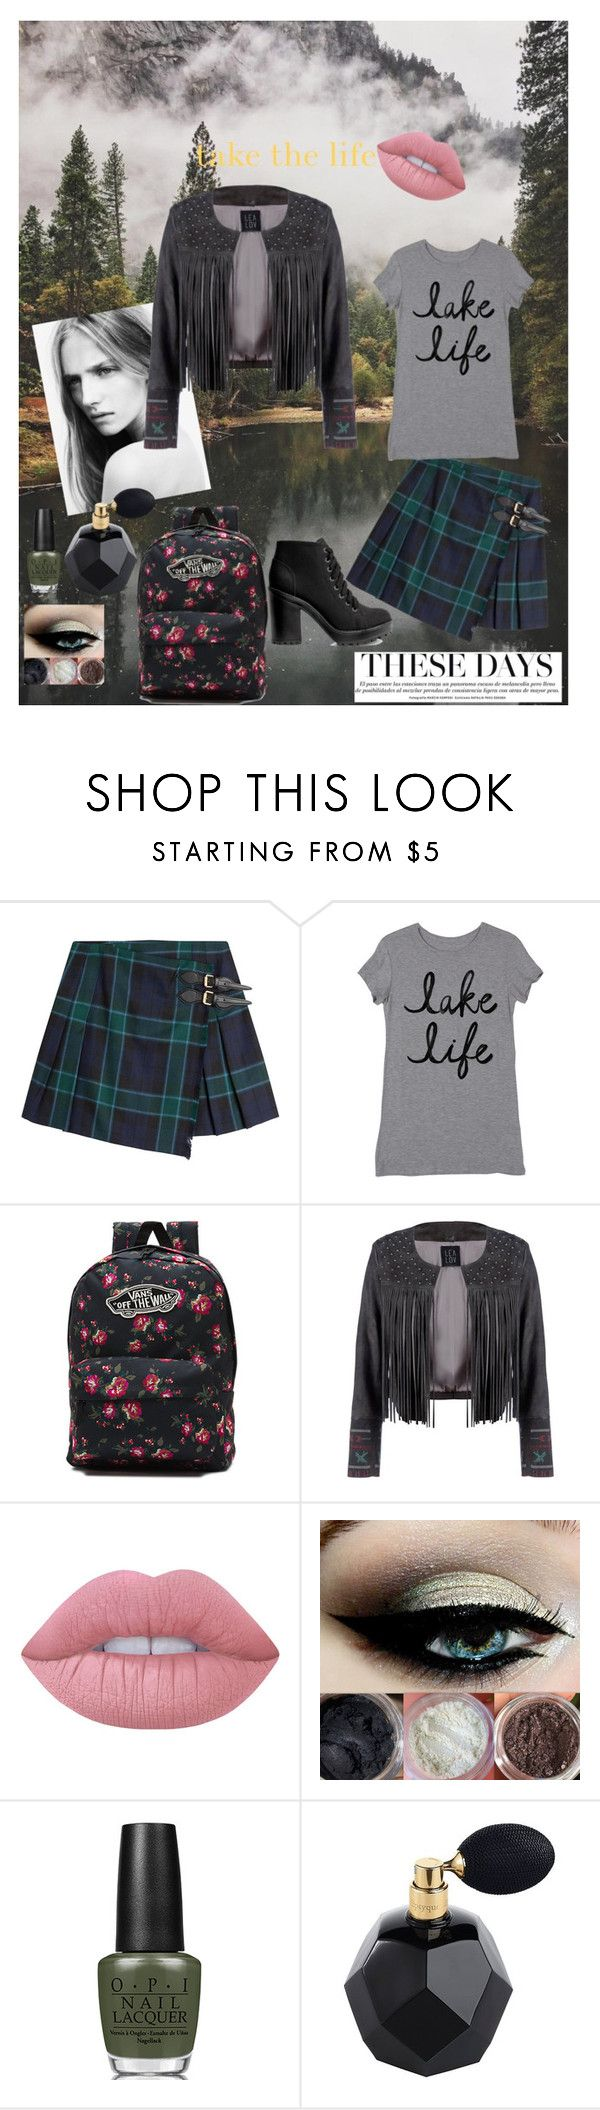 """country style"" by soutzoglou-maria on Polyvore featuring Burberry, Vans, Lime Crime, OPI, H&M and country"